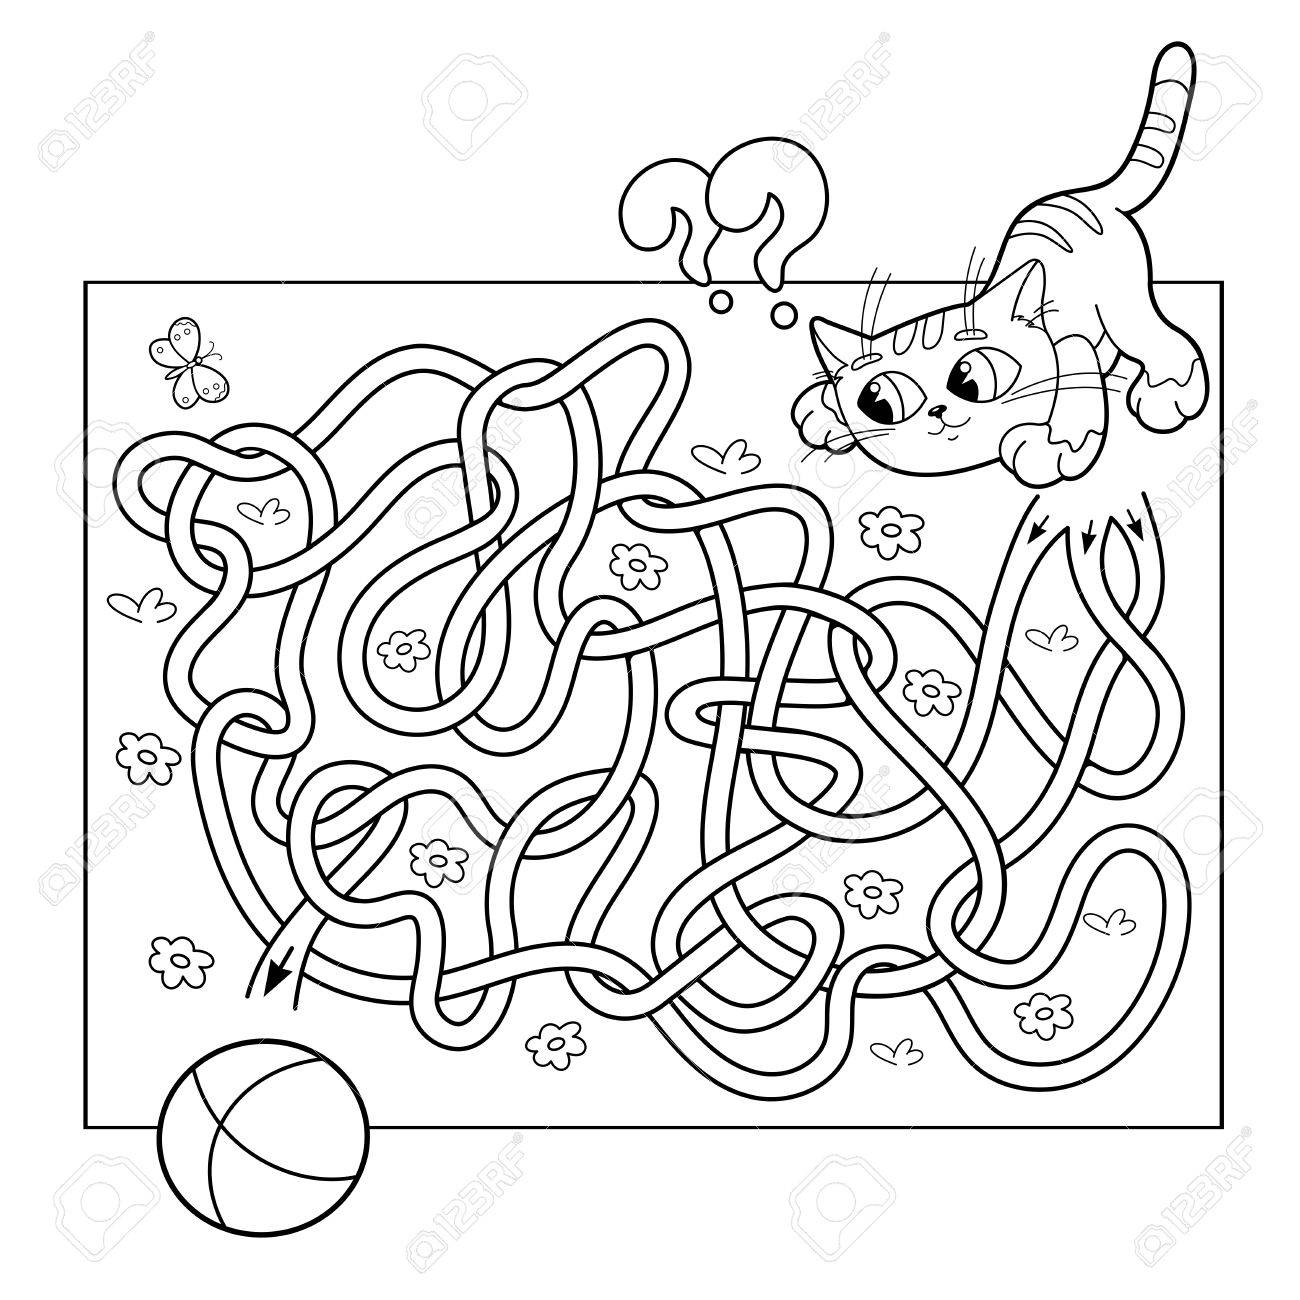 road coloring page. Cartoon Vector Illustration of Education Maze or Labyrinth Game for  Preschool Children Puzzle Tangled Of Or